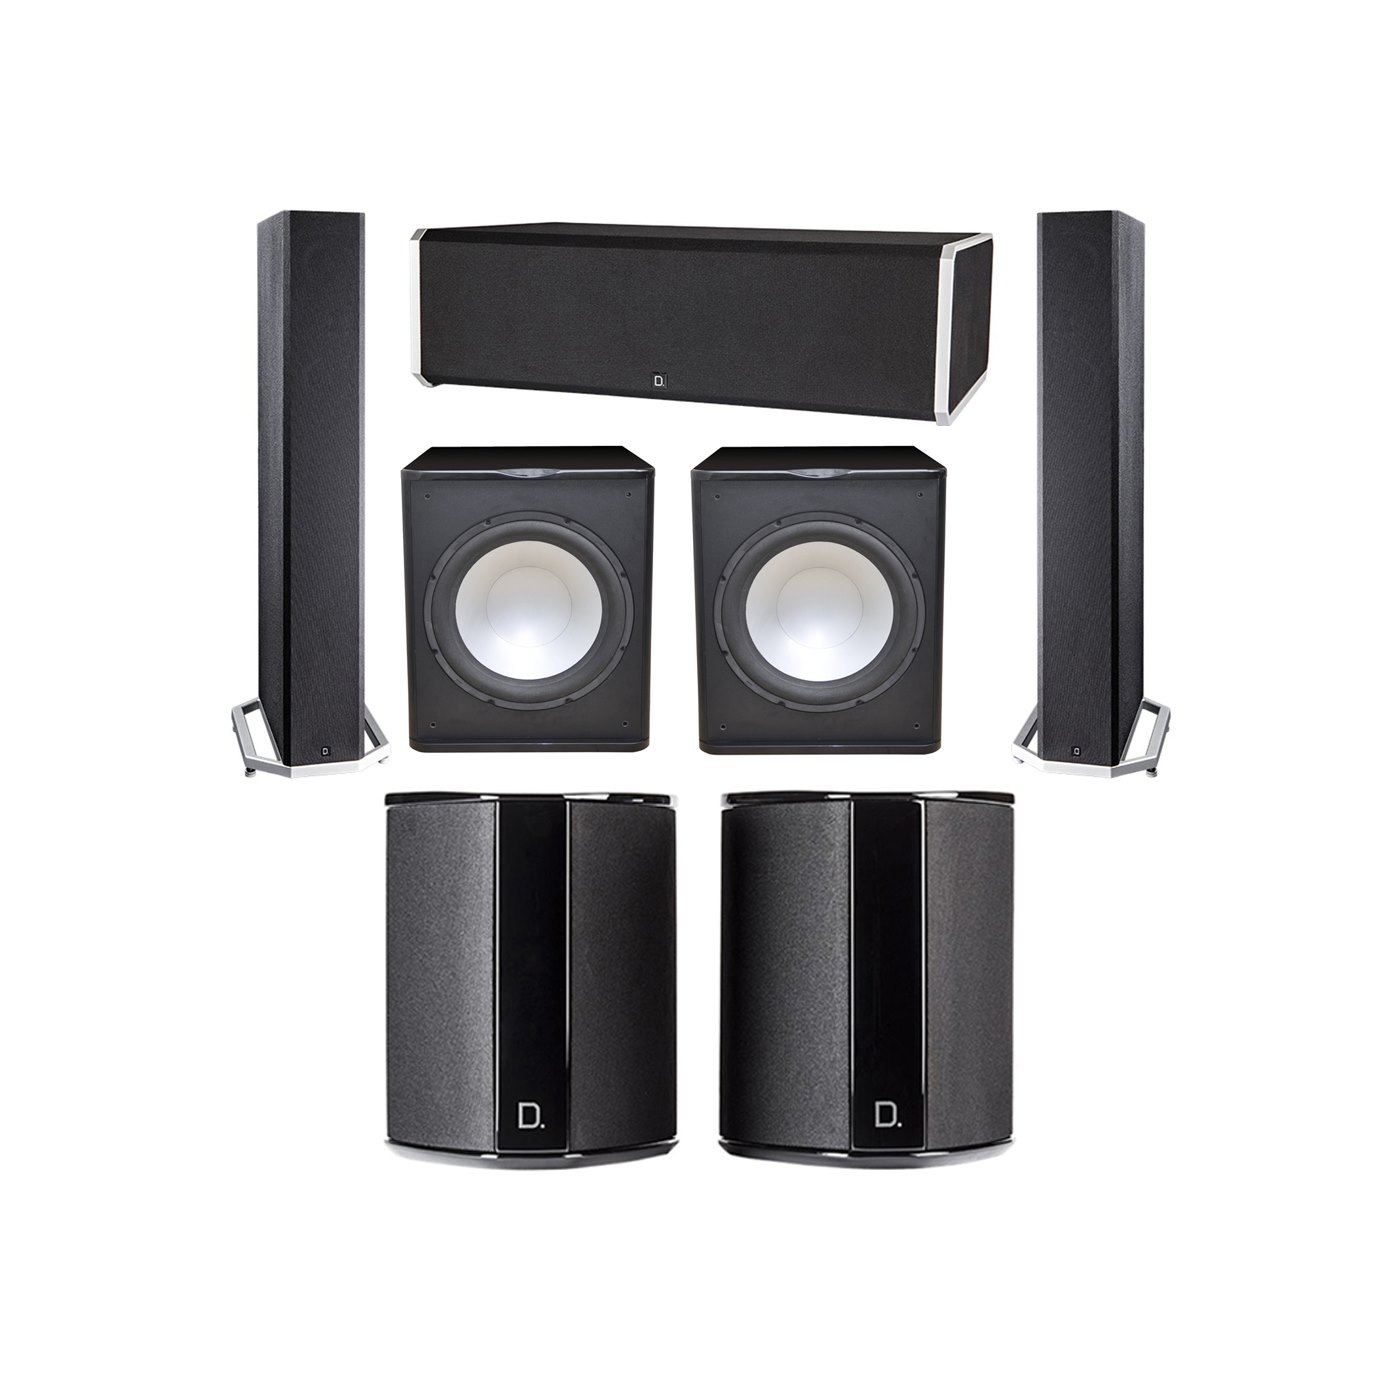 Definitive Technology 5.2 System with 2 BP9040 Tower Speakers, 1 CS9080 Center Channel Speaker, 2 SR9040 Surround Speaker, 2 Premier Acoustic PA-150 Subwoofer